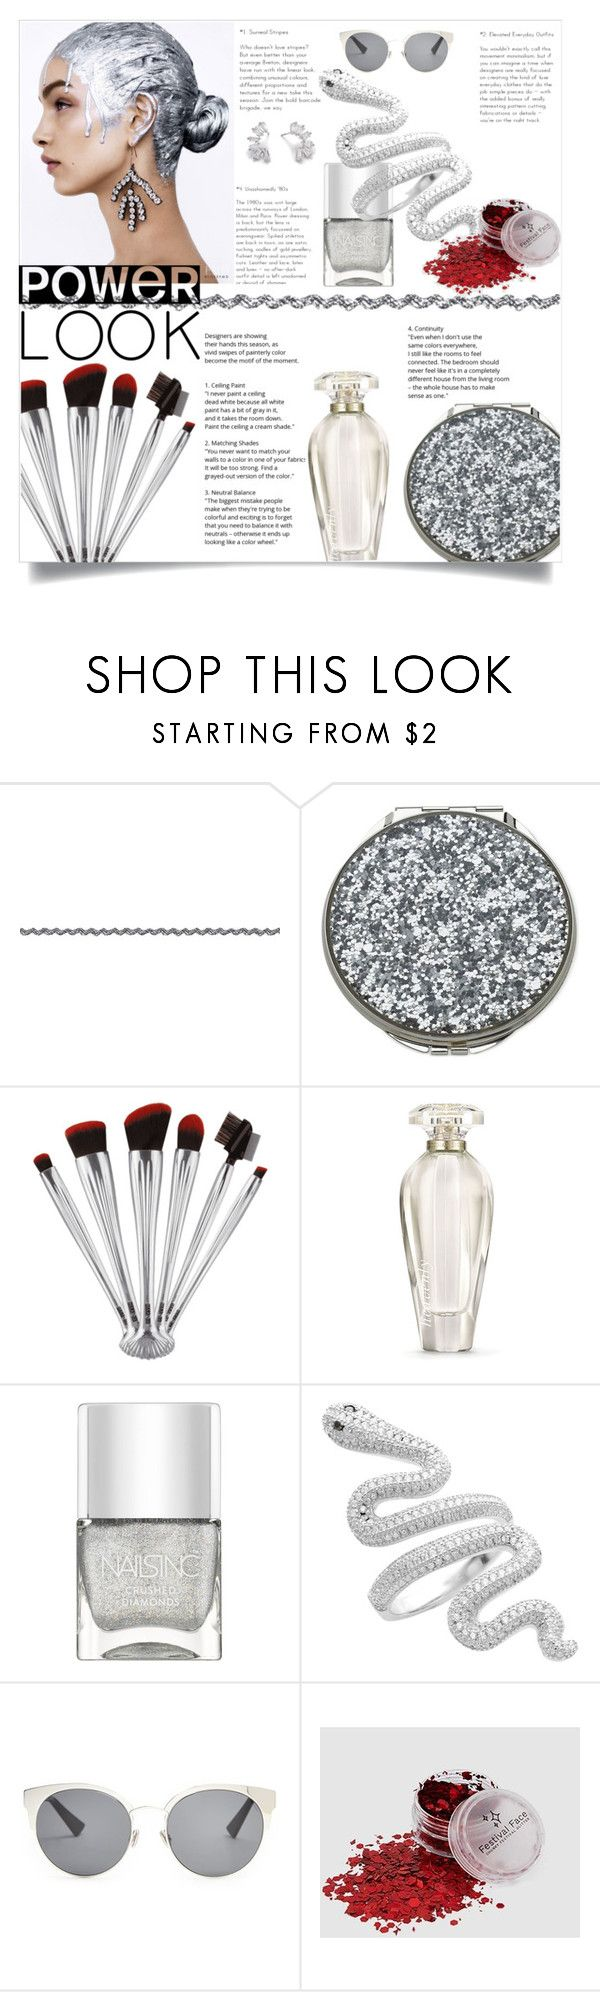 """Bez naslova #9"" by djina997 ❤ liked on Polyvore featuring beauty, Kate Spade, Victoria's Secret, Nails Inc. and Christian Dior"